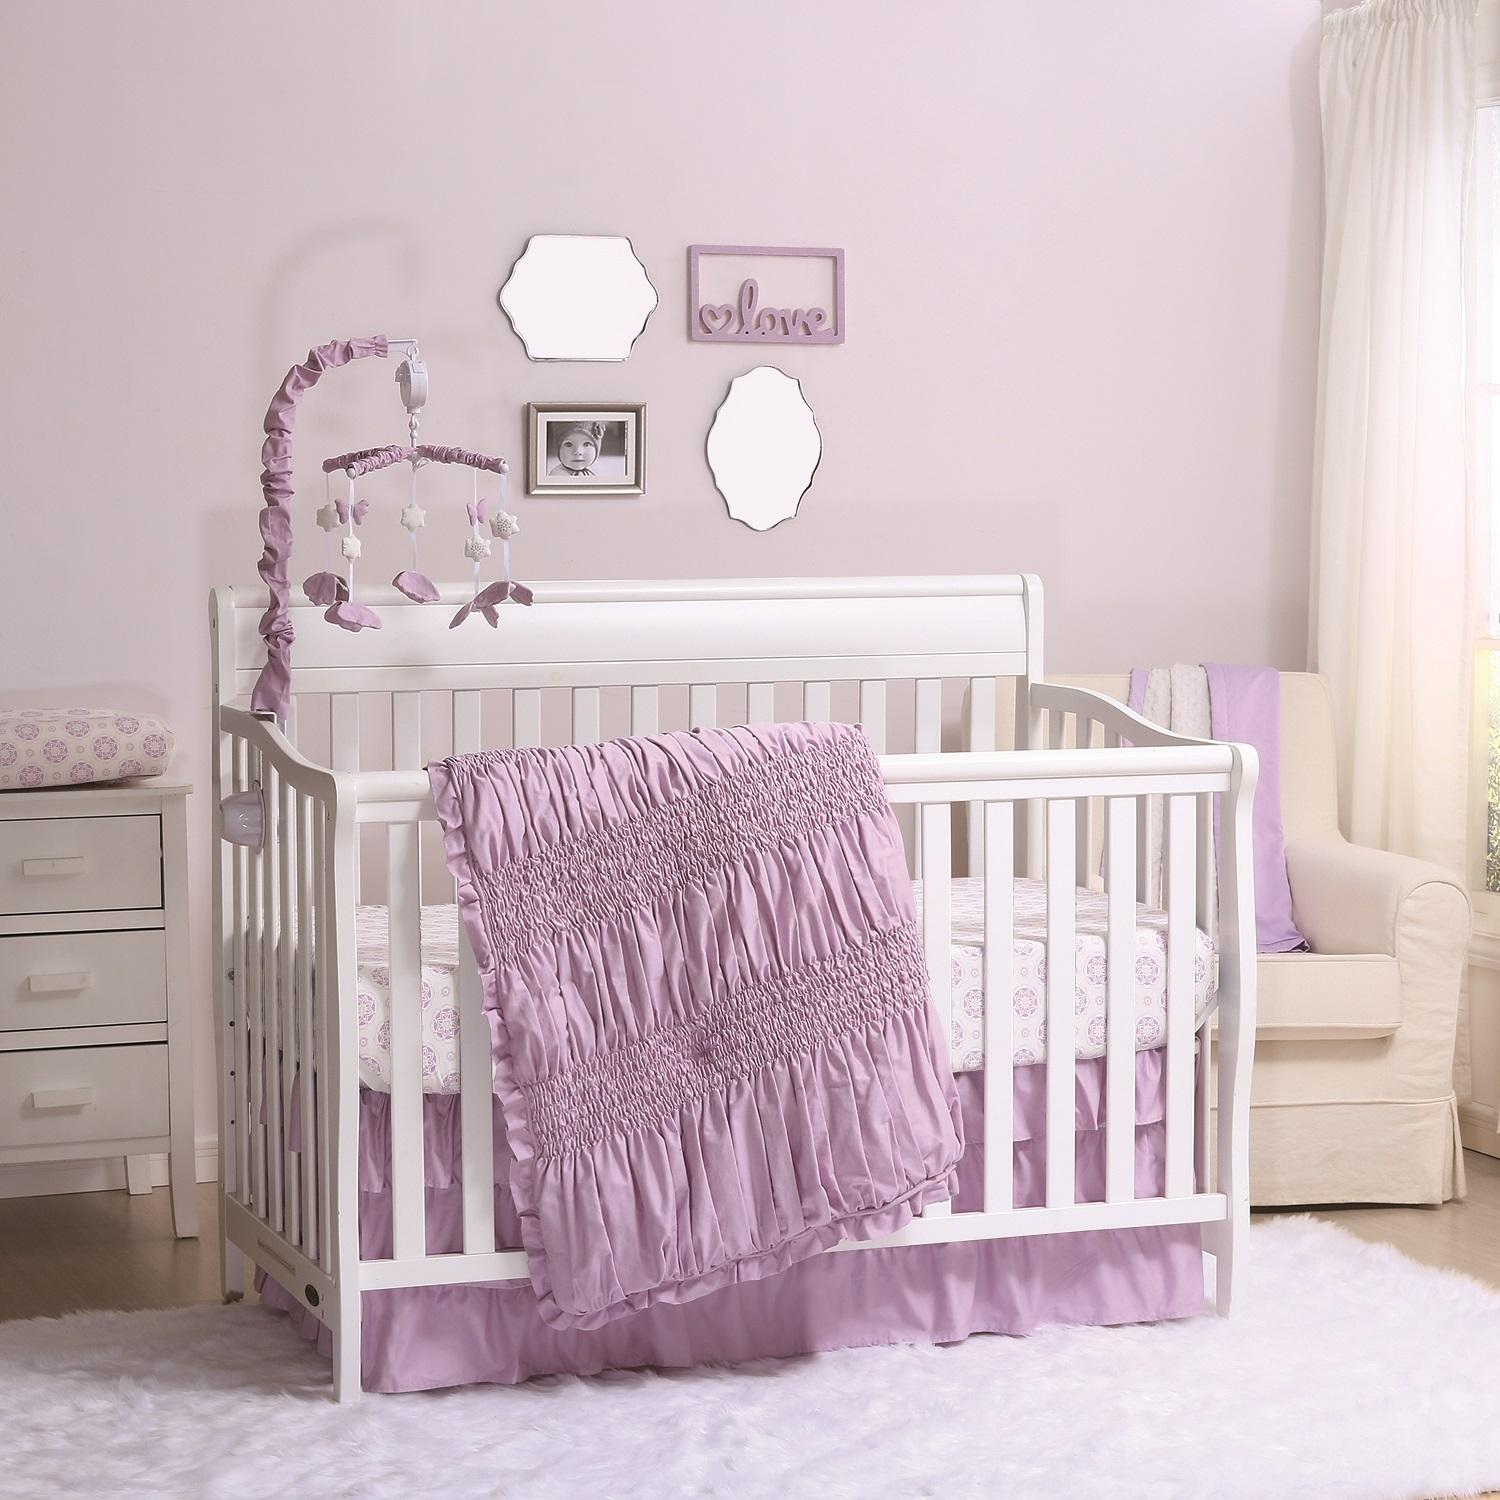 Create A Sweet And Delicate Nursery For Your New Arrival With The Lilac Kisses 3 Piece Crib Bedding Collection We Use Dressmaker S Technique Of